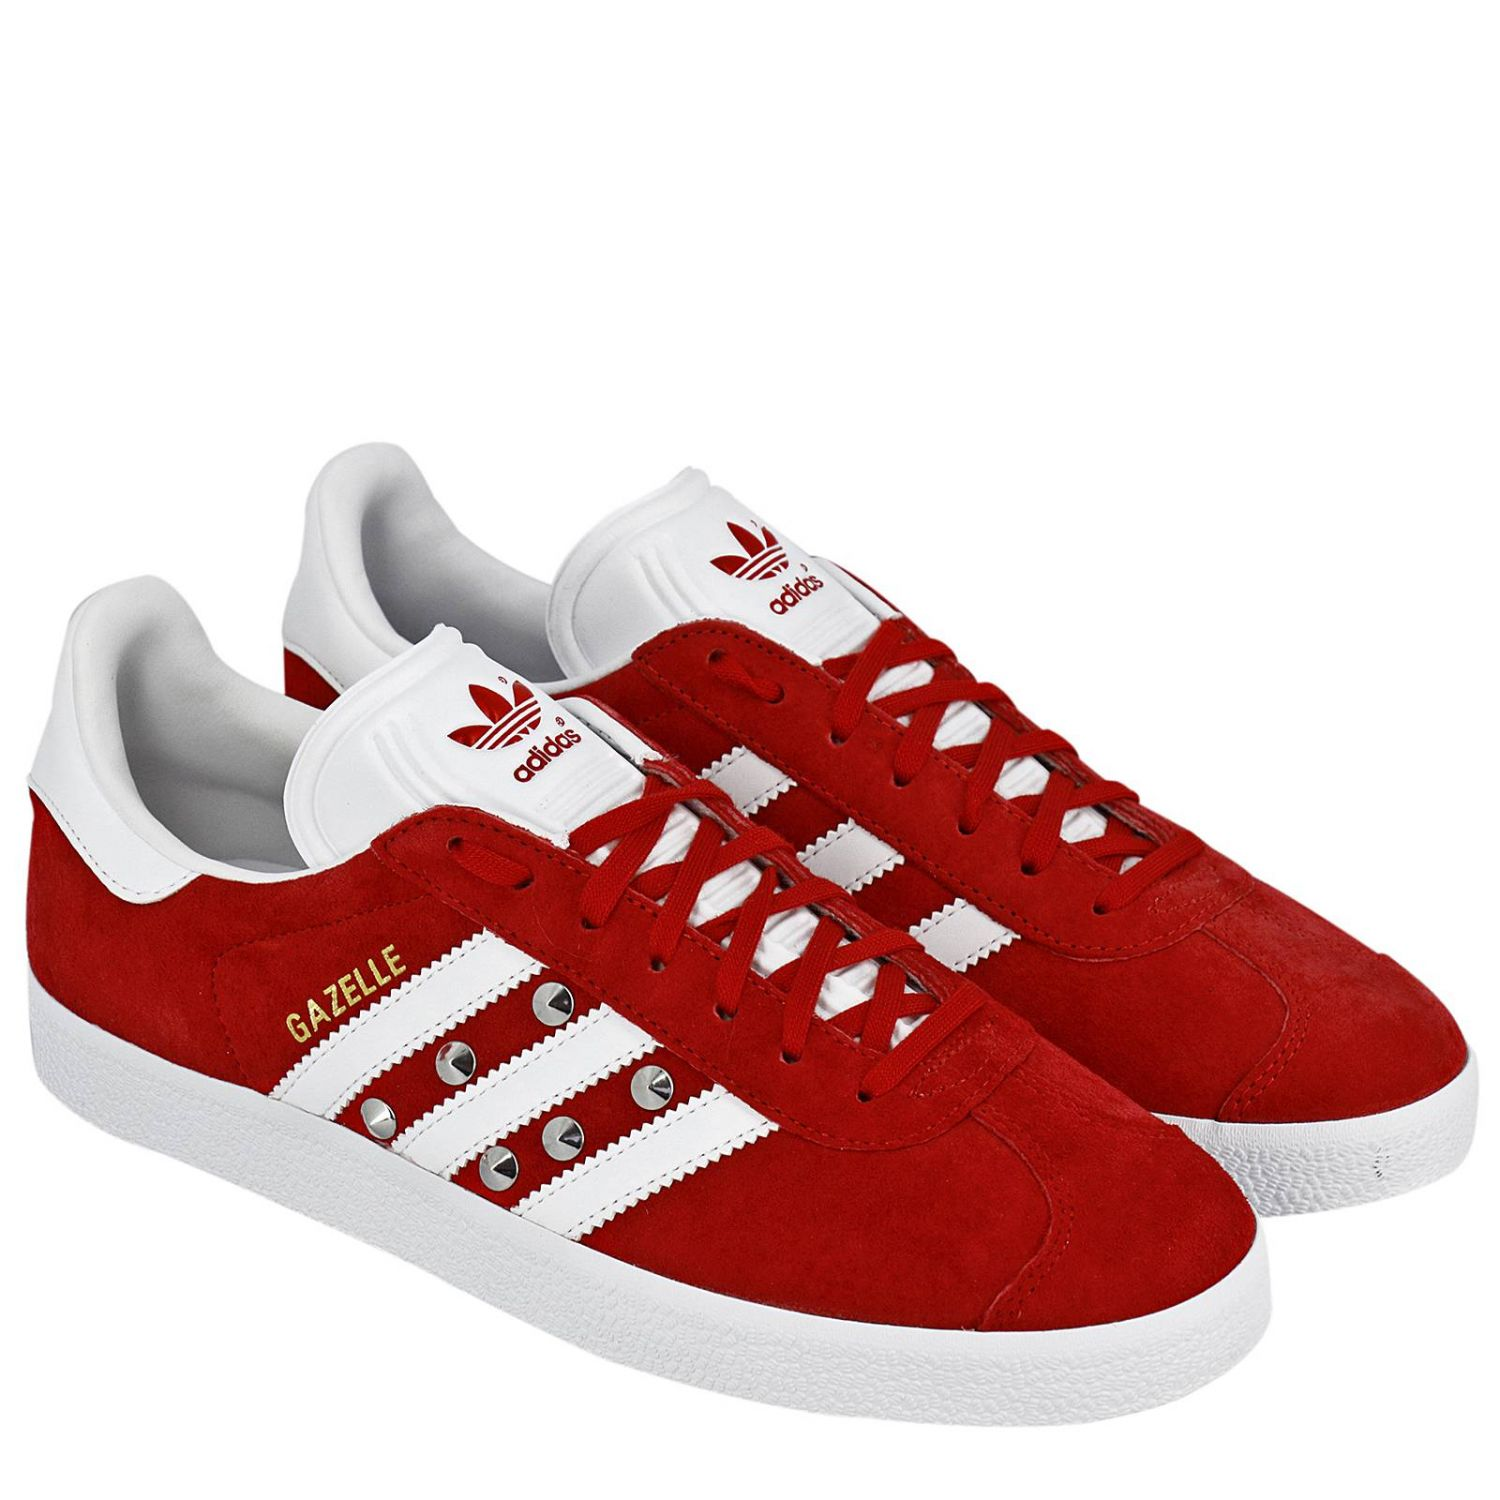 Adidas Originals Gazelle Project Customize in suede with studs